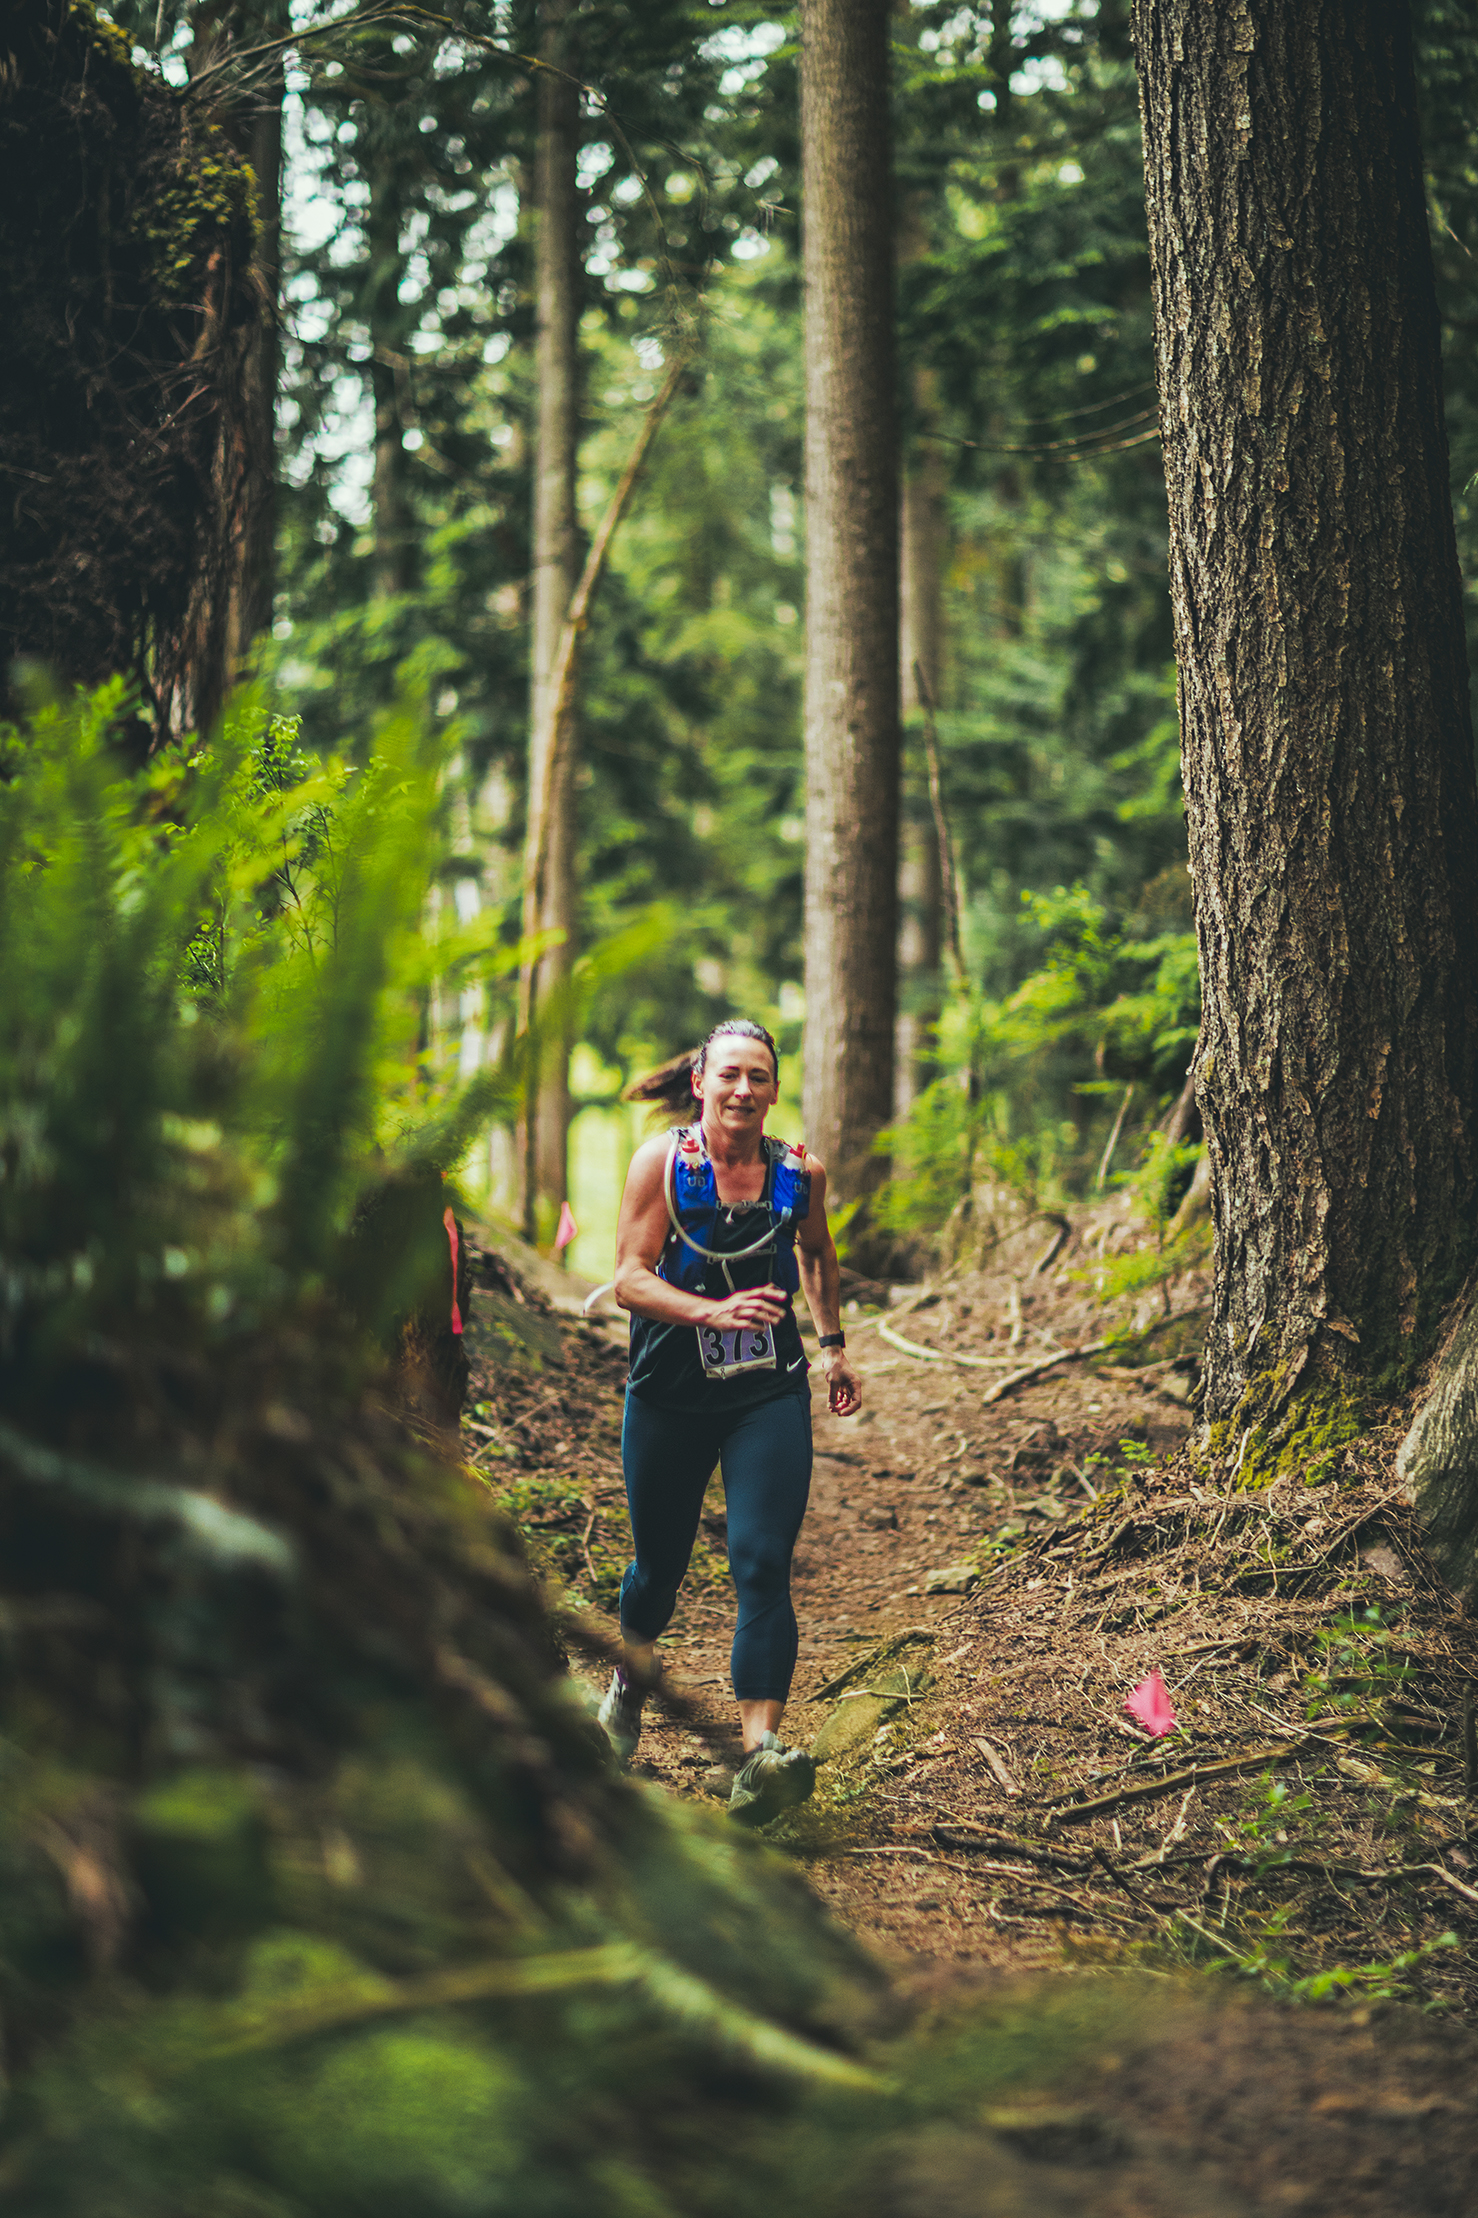 Fraser Valley Trail Races - Bear Mountain - IMG_1513 by Brice Ferre Studio - Vancouver Portrait Adventure and Athlete Photographer.jpg